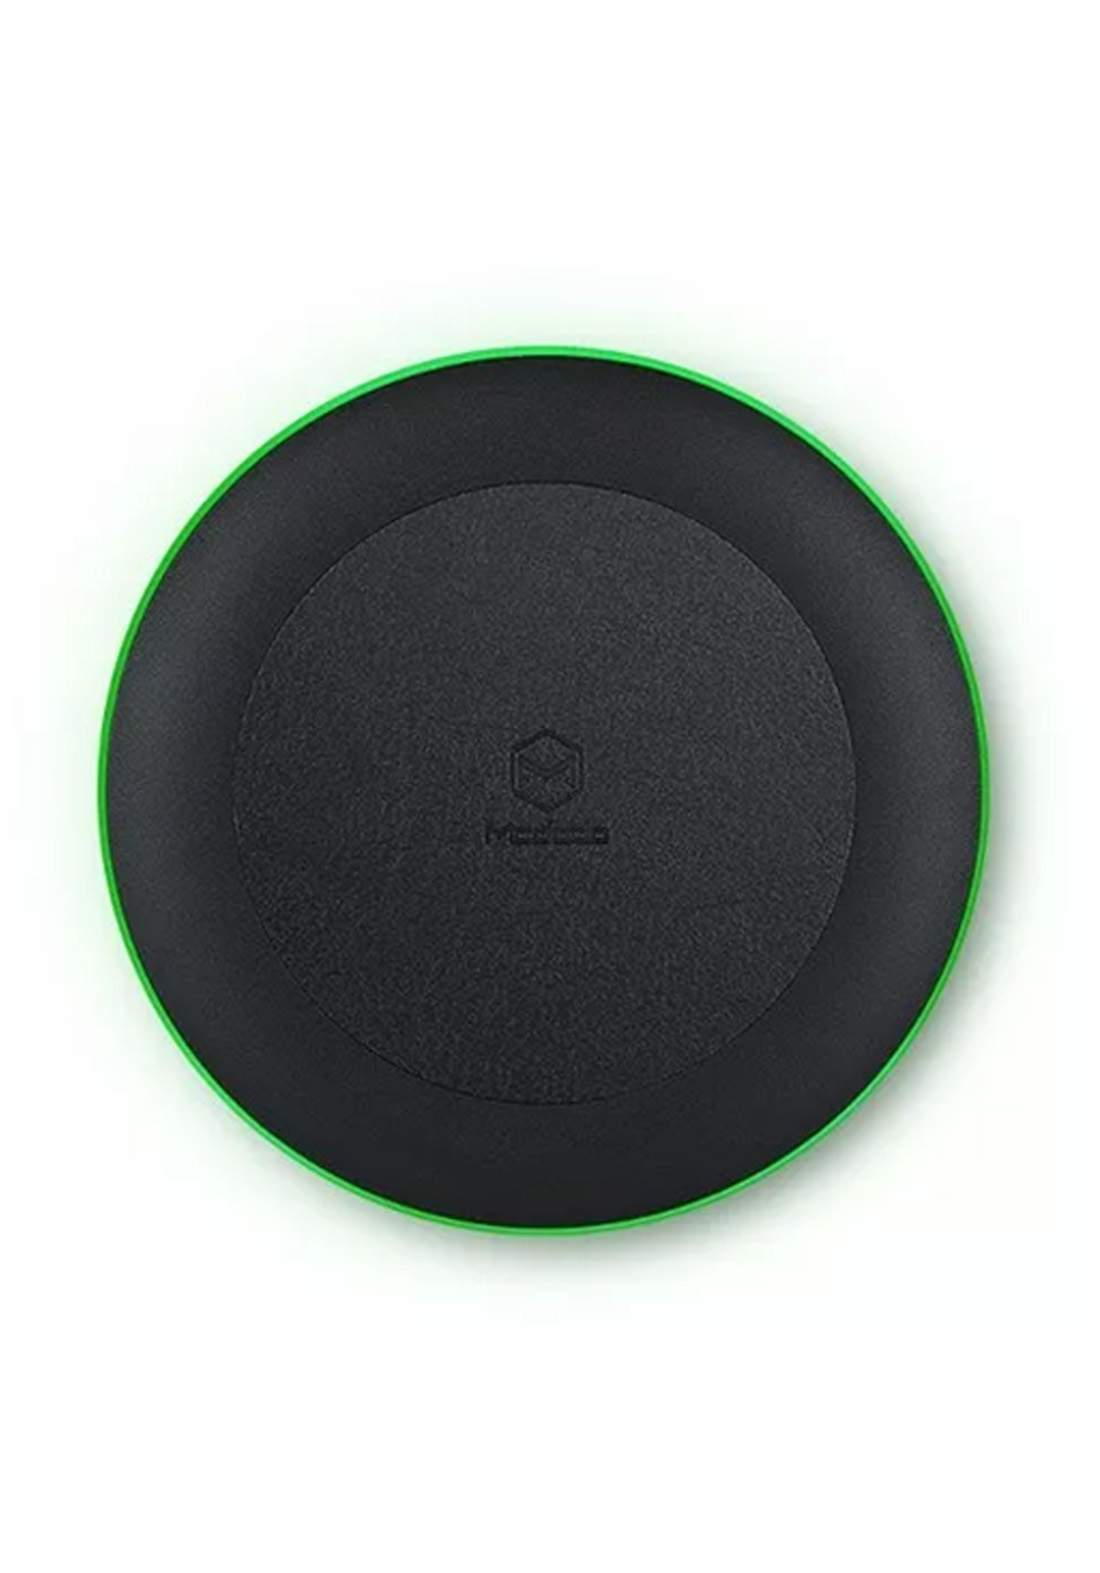 (10975)Mcdodo CH-5141 Fast Wireless Charger Qi 10w 1 iPhone/Android - Black شاحنة